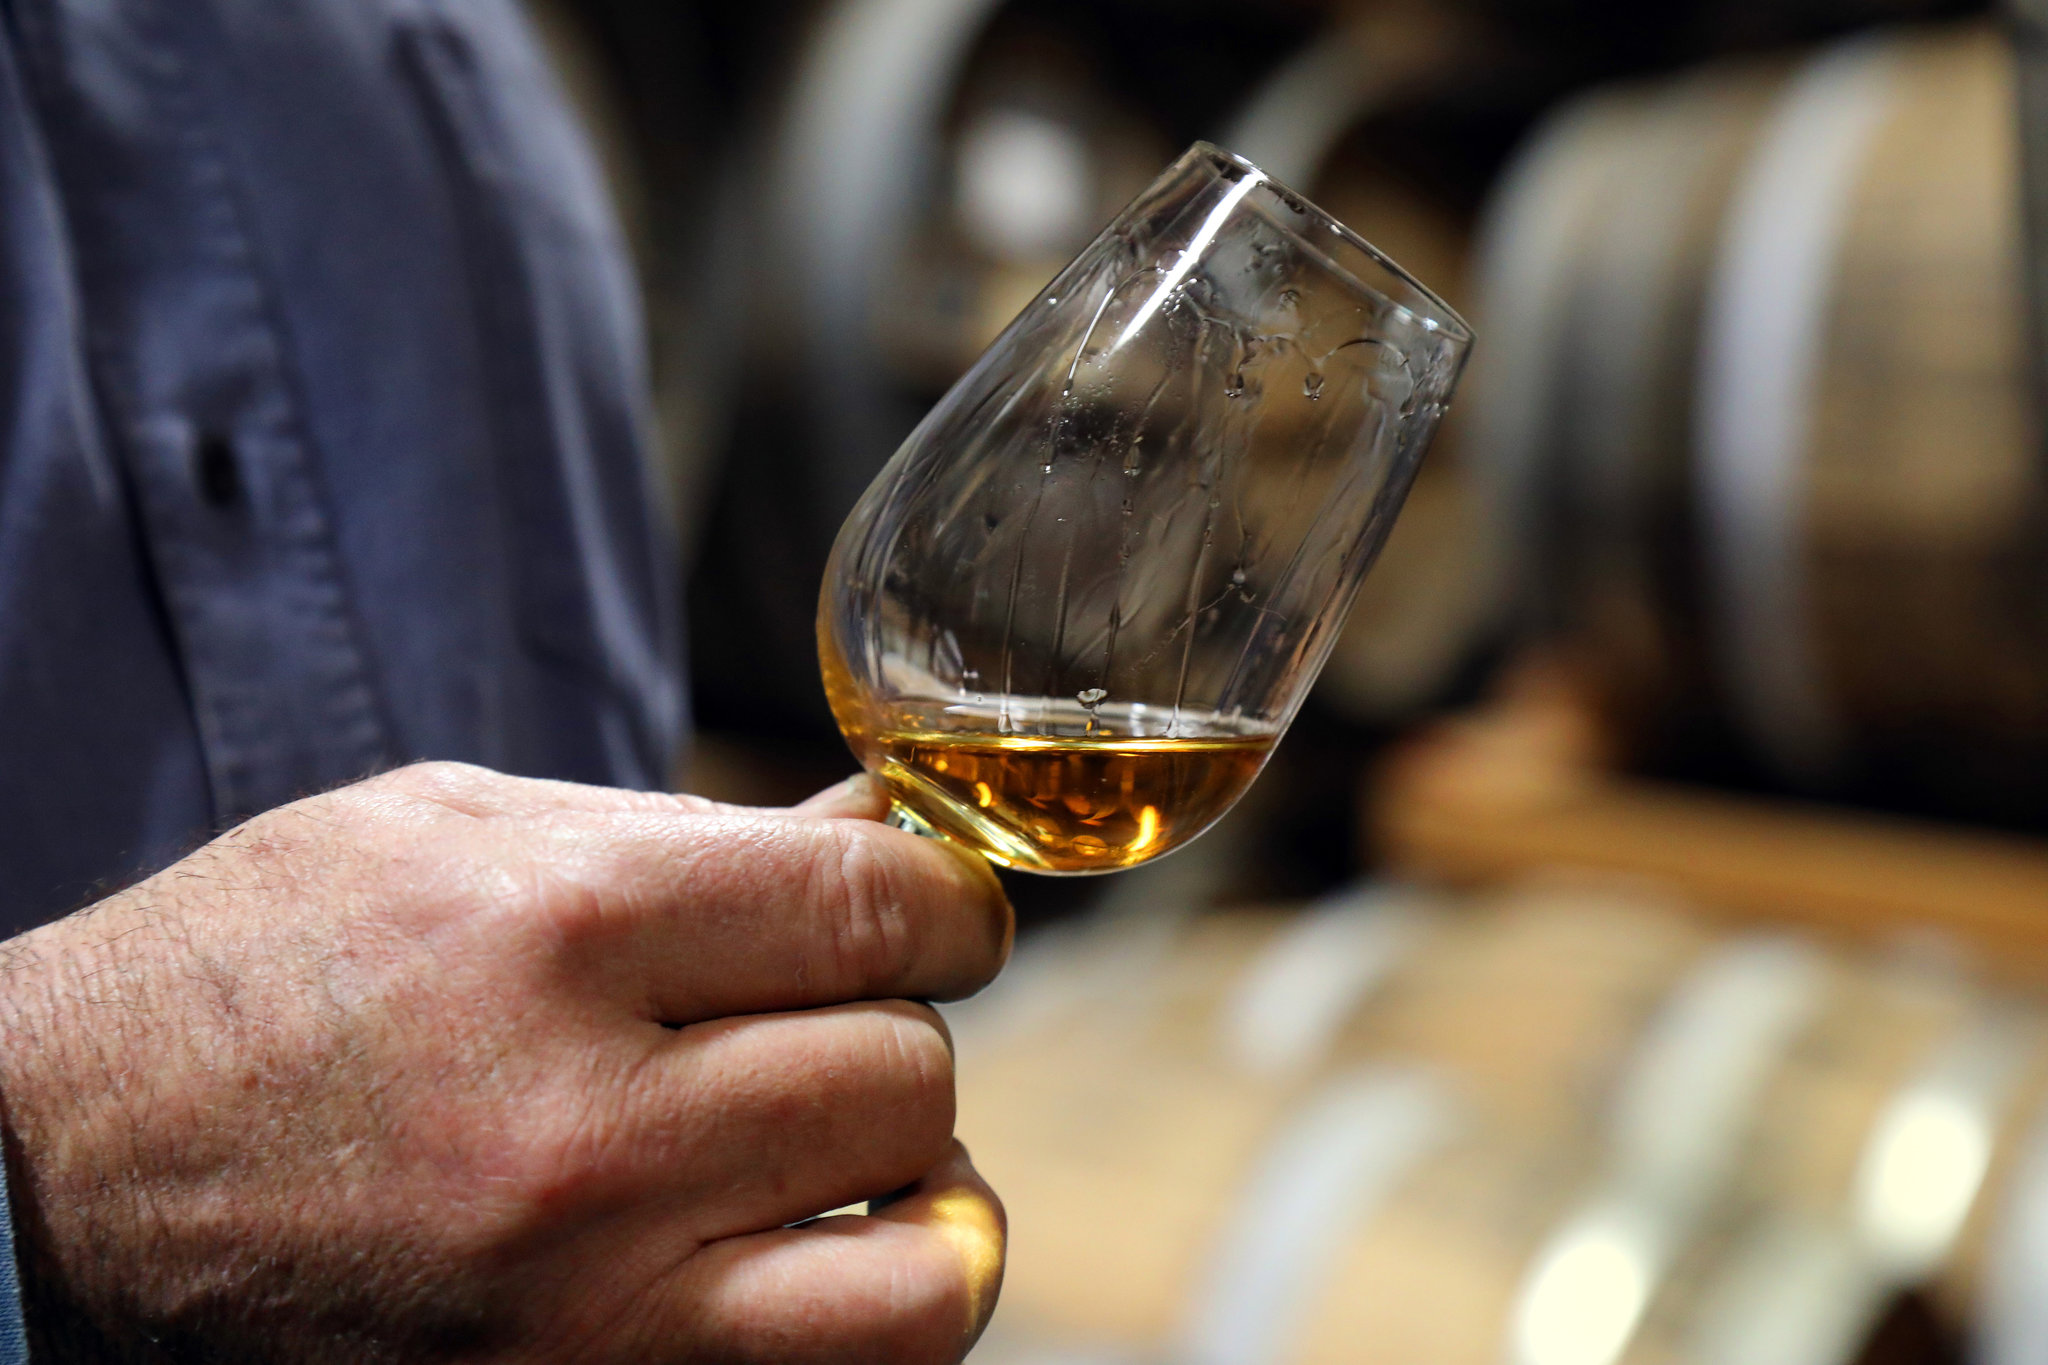 Daniel Farber, owner of Osocalis Distillery in Soquel, Calif., with a glass of brandy. He is one of many distillers betting that brandy will be the next big brown liquor. CreditJim Wilson/The New York Times